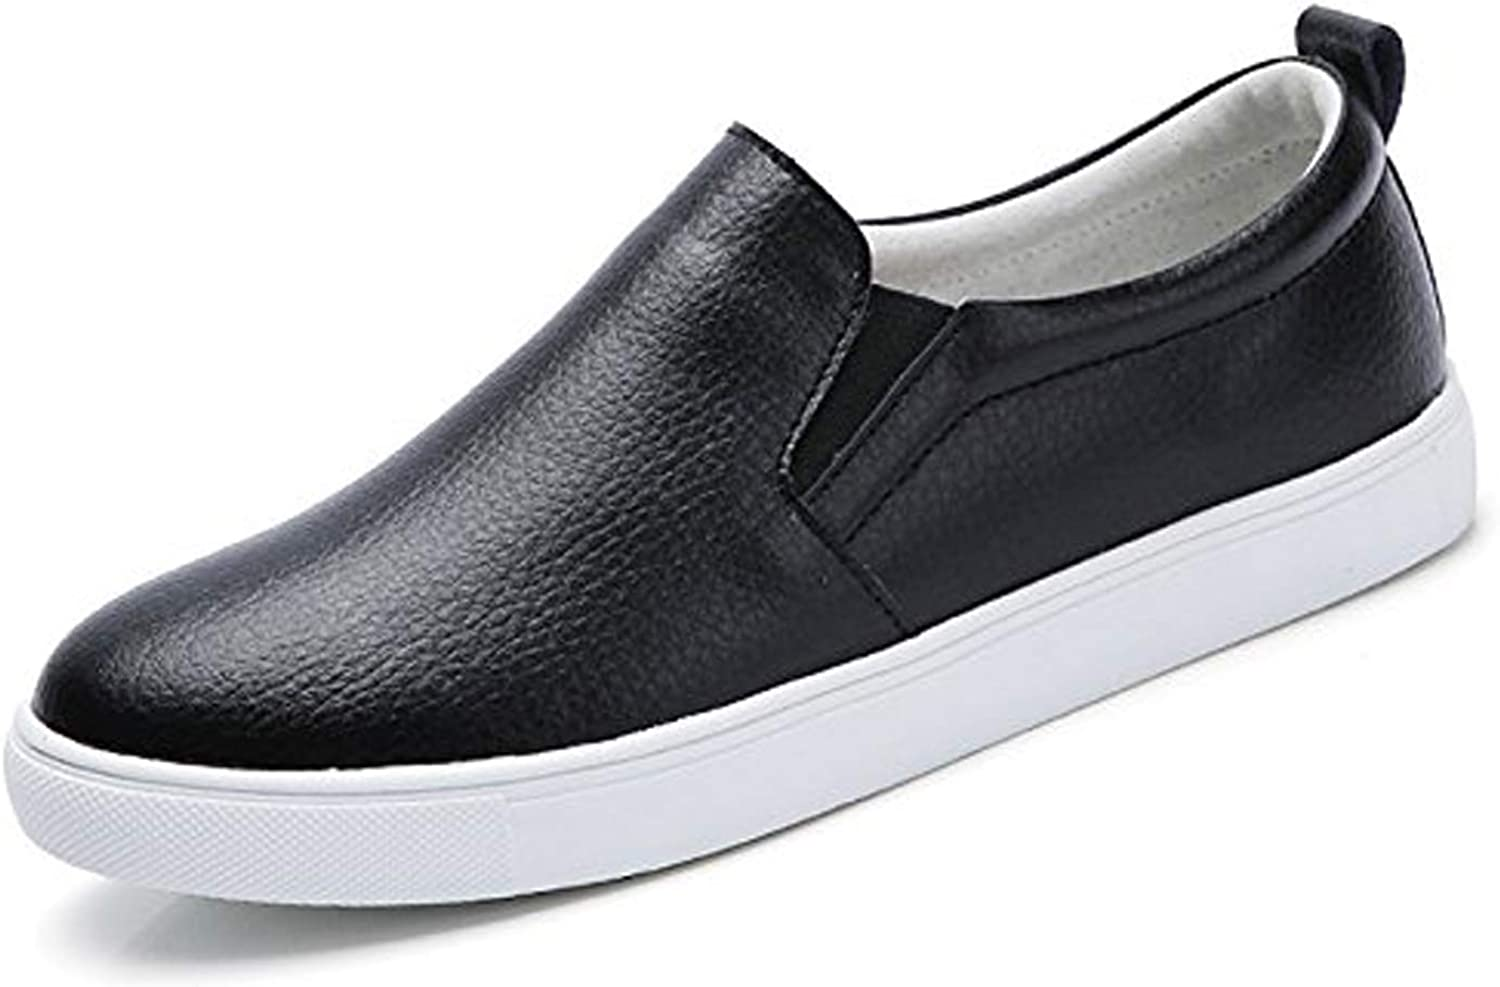 TSIODFO Women's Loafers Flats shoes Genuine Cow Leather Comfort Moccasins Slip On Fashion Sneakers